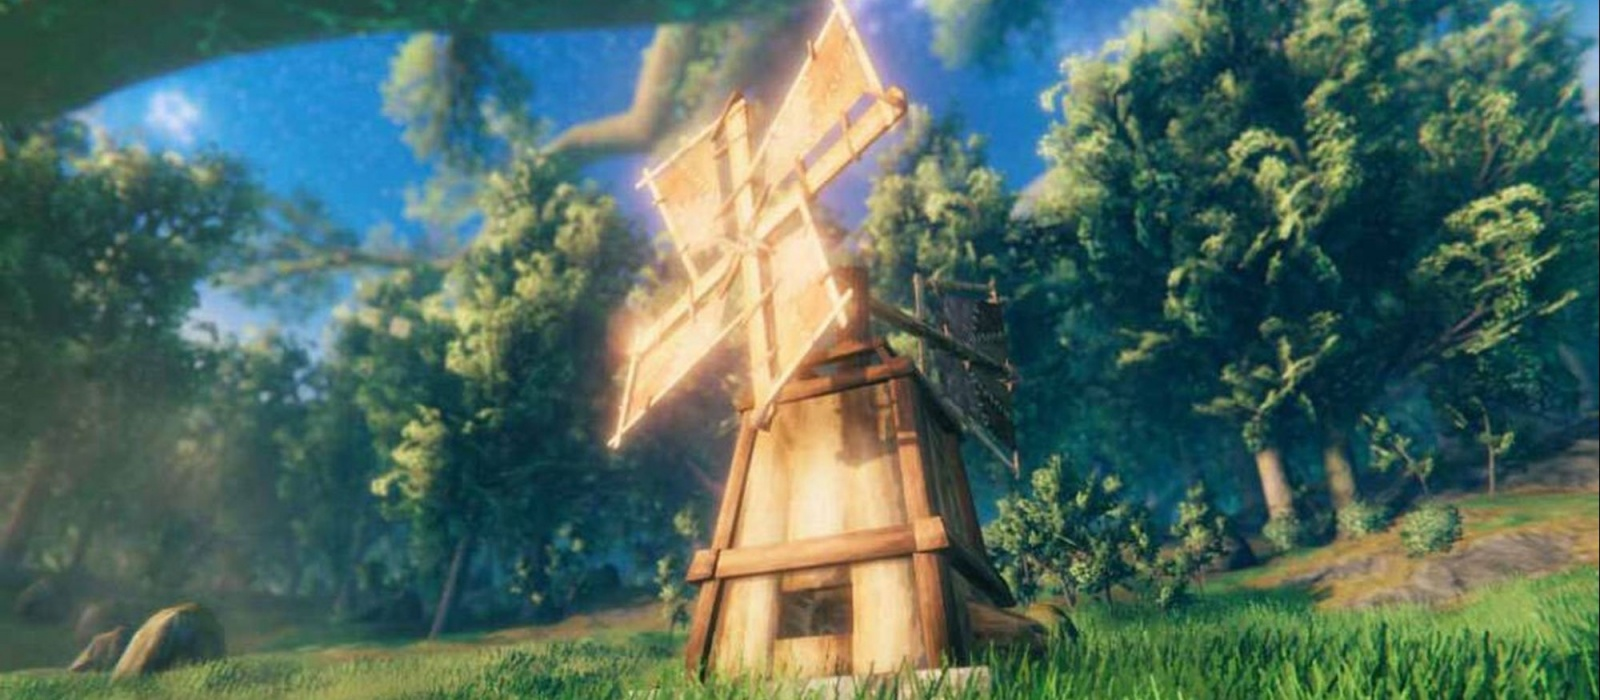 How to make a windmill in Valheim. Where to find barley to make flour